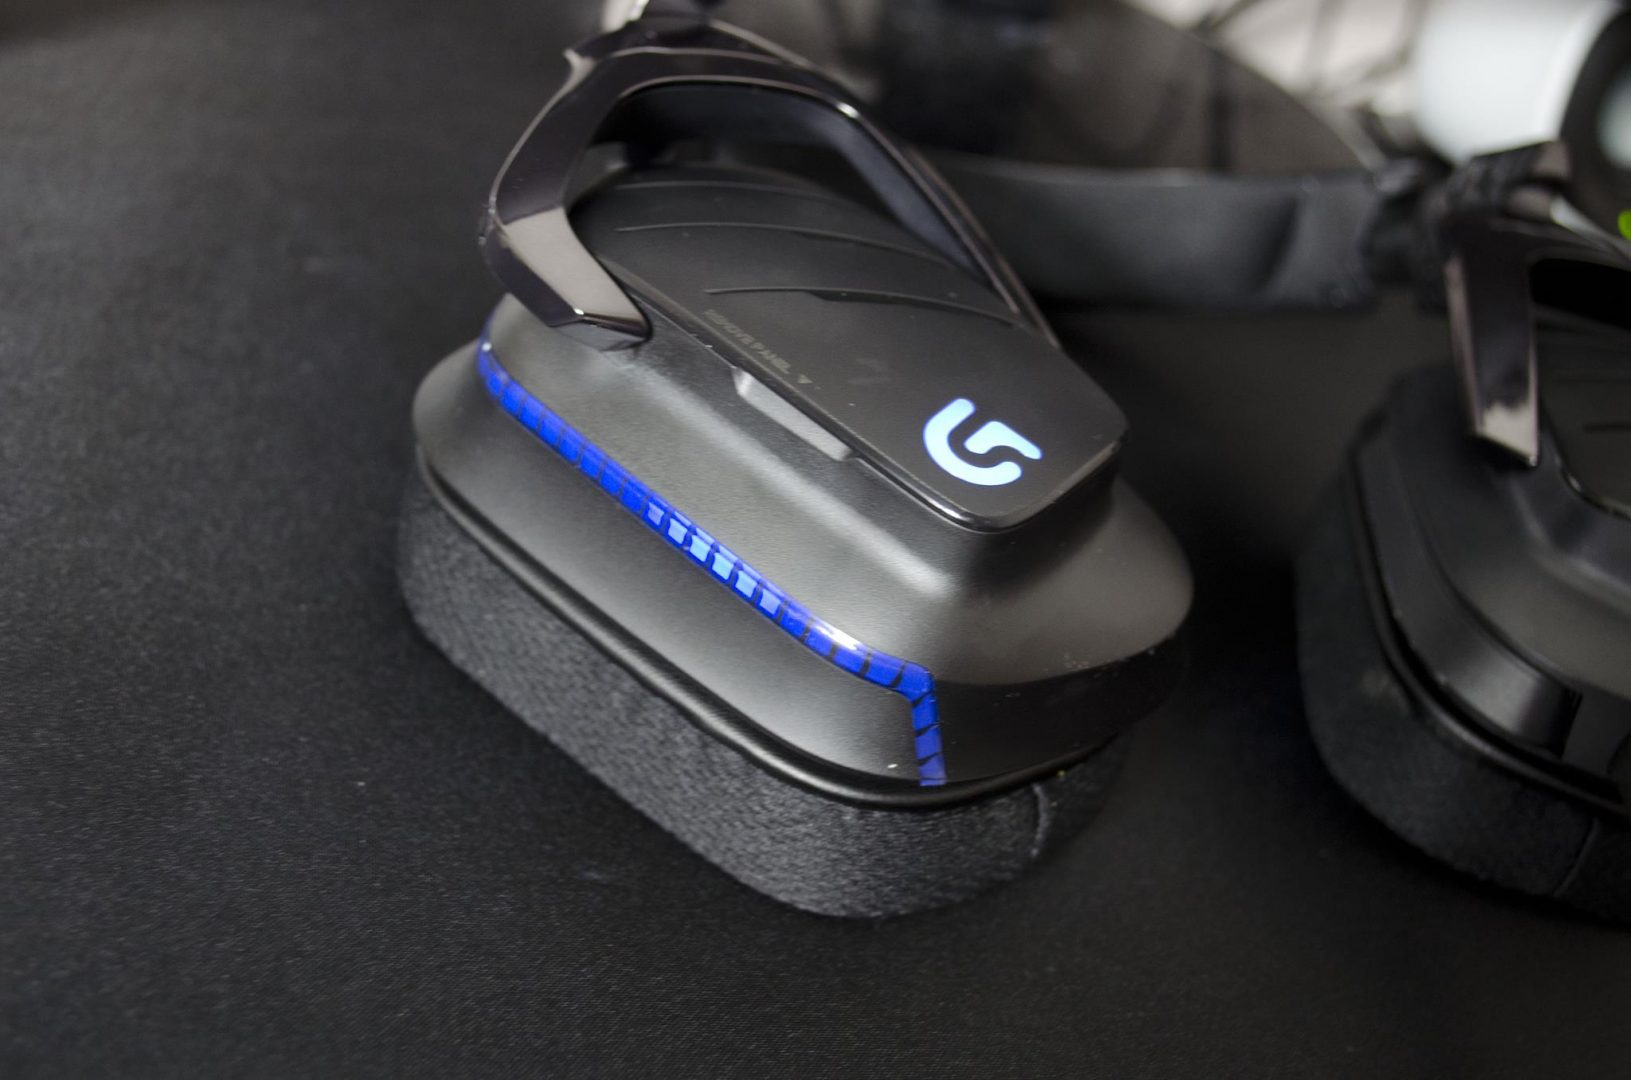 Logitech G633 artemis spectrum rgb 7.1 surround gaming headset review_156